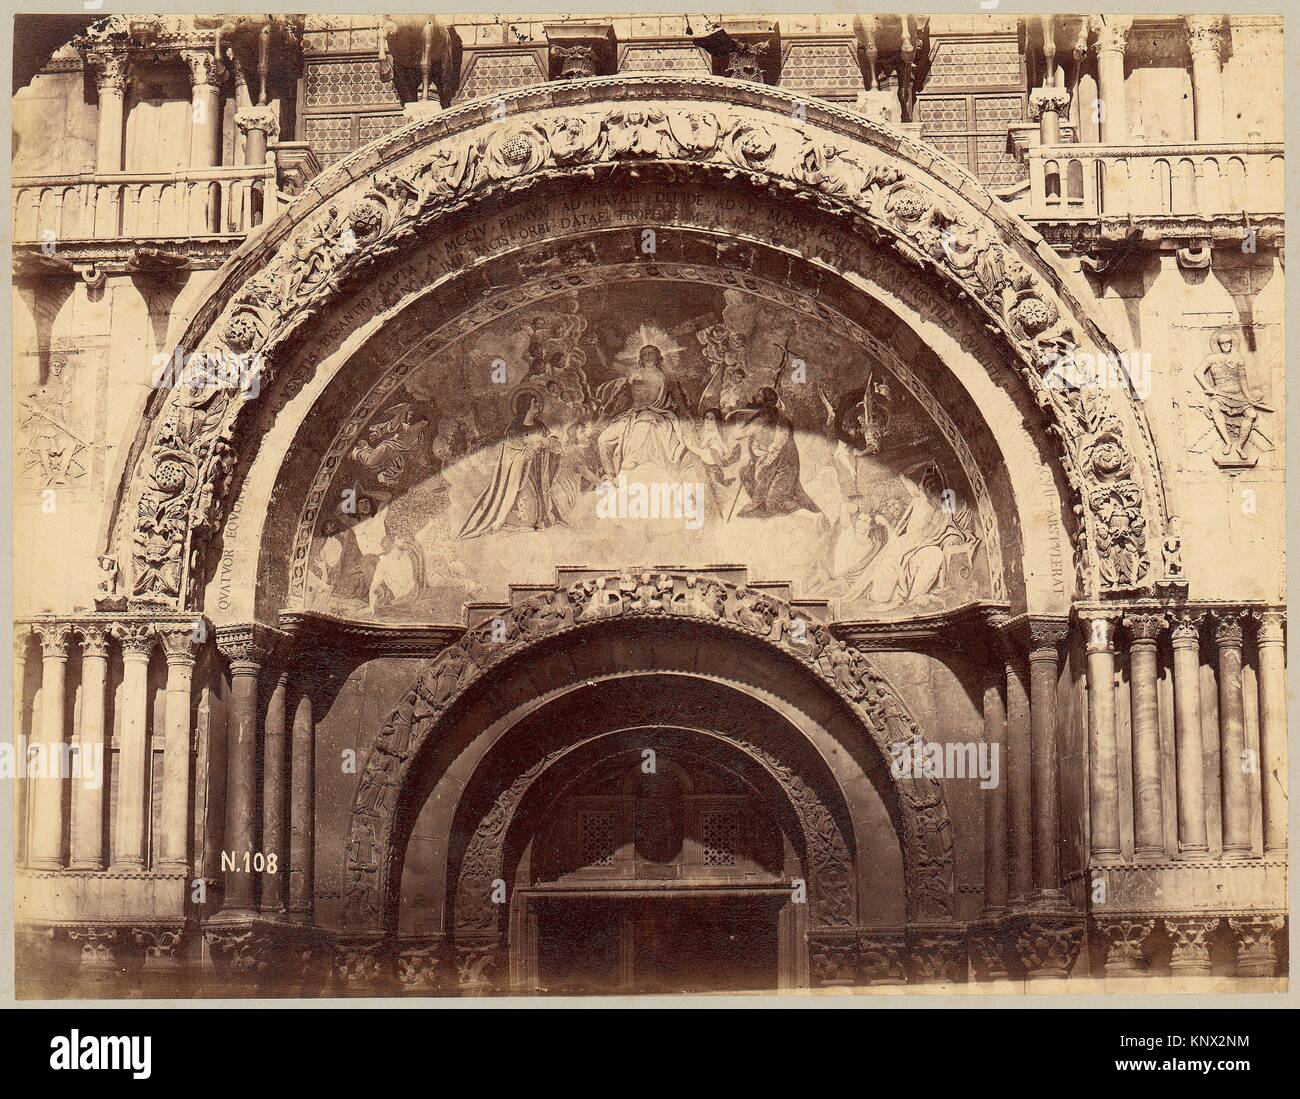 [Church Portal with Mosaic of Christ Enthroned in Majesty]. Artist: Unknown; Date: 1880s; Medium: Albumen silver - Stock Image